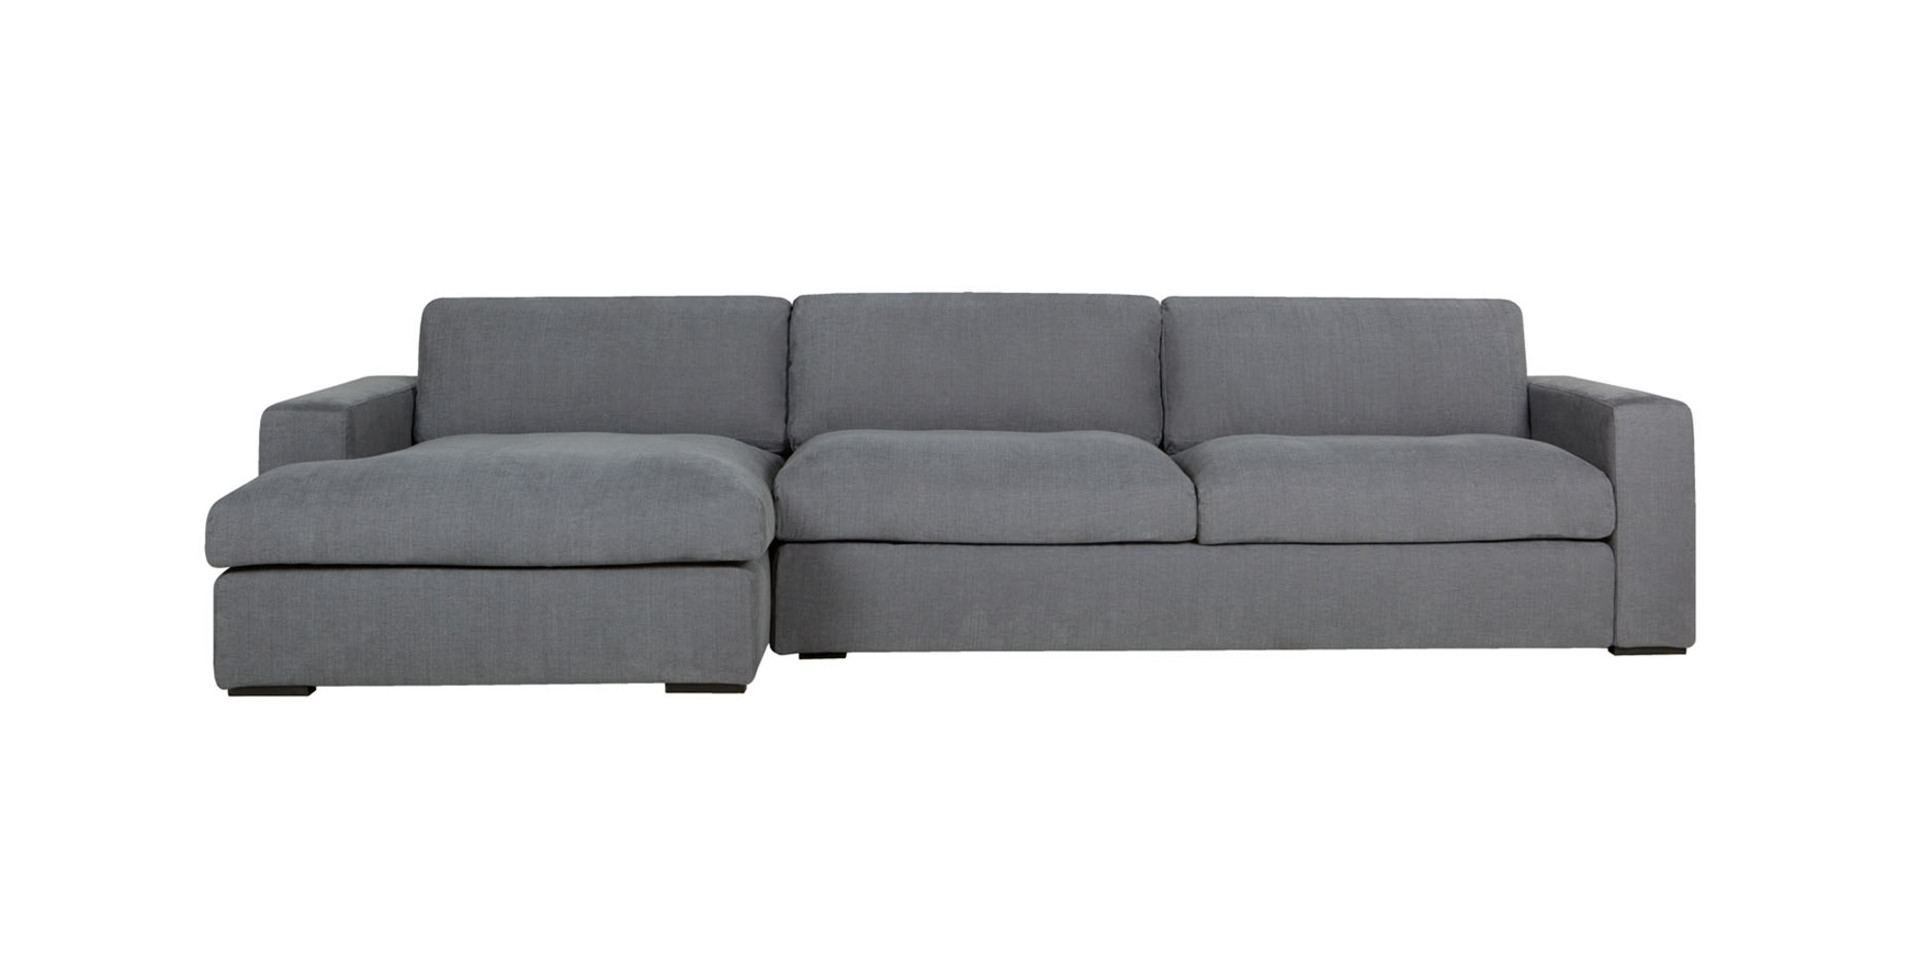 sits-linda-angle-3seaterright_chaiselongue93left_caleido10997_grey_1